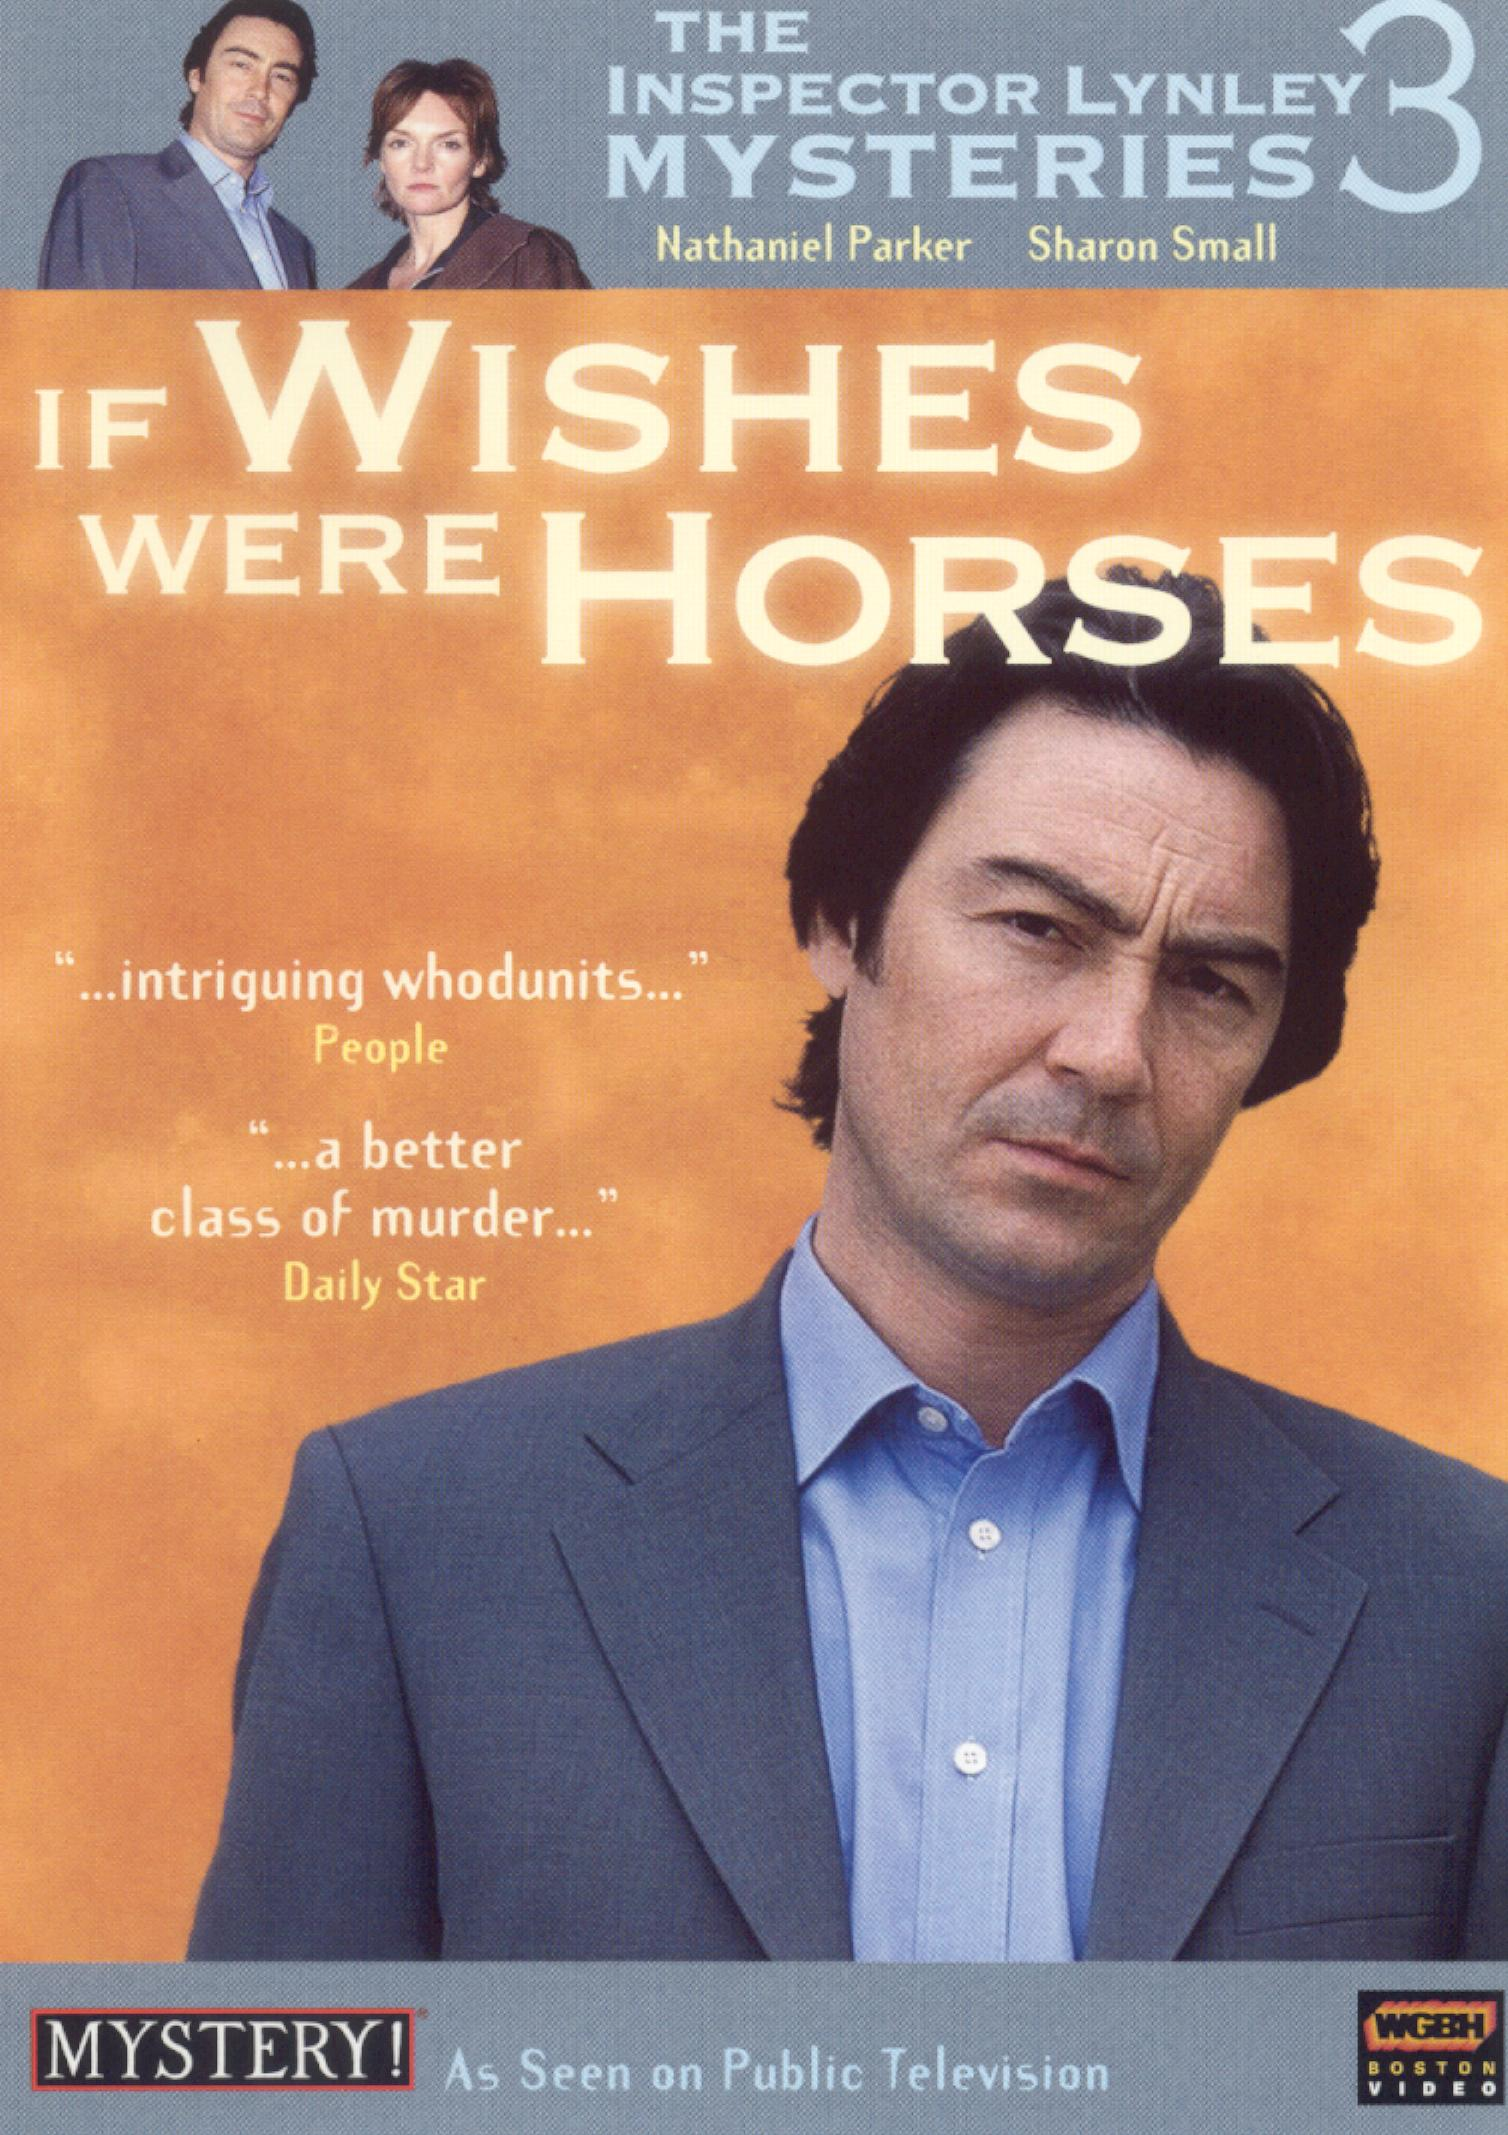 The Inspector Lynley Mysteries: If Wishes Were Horses